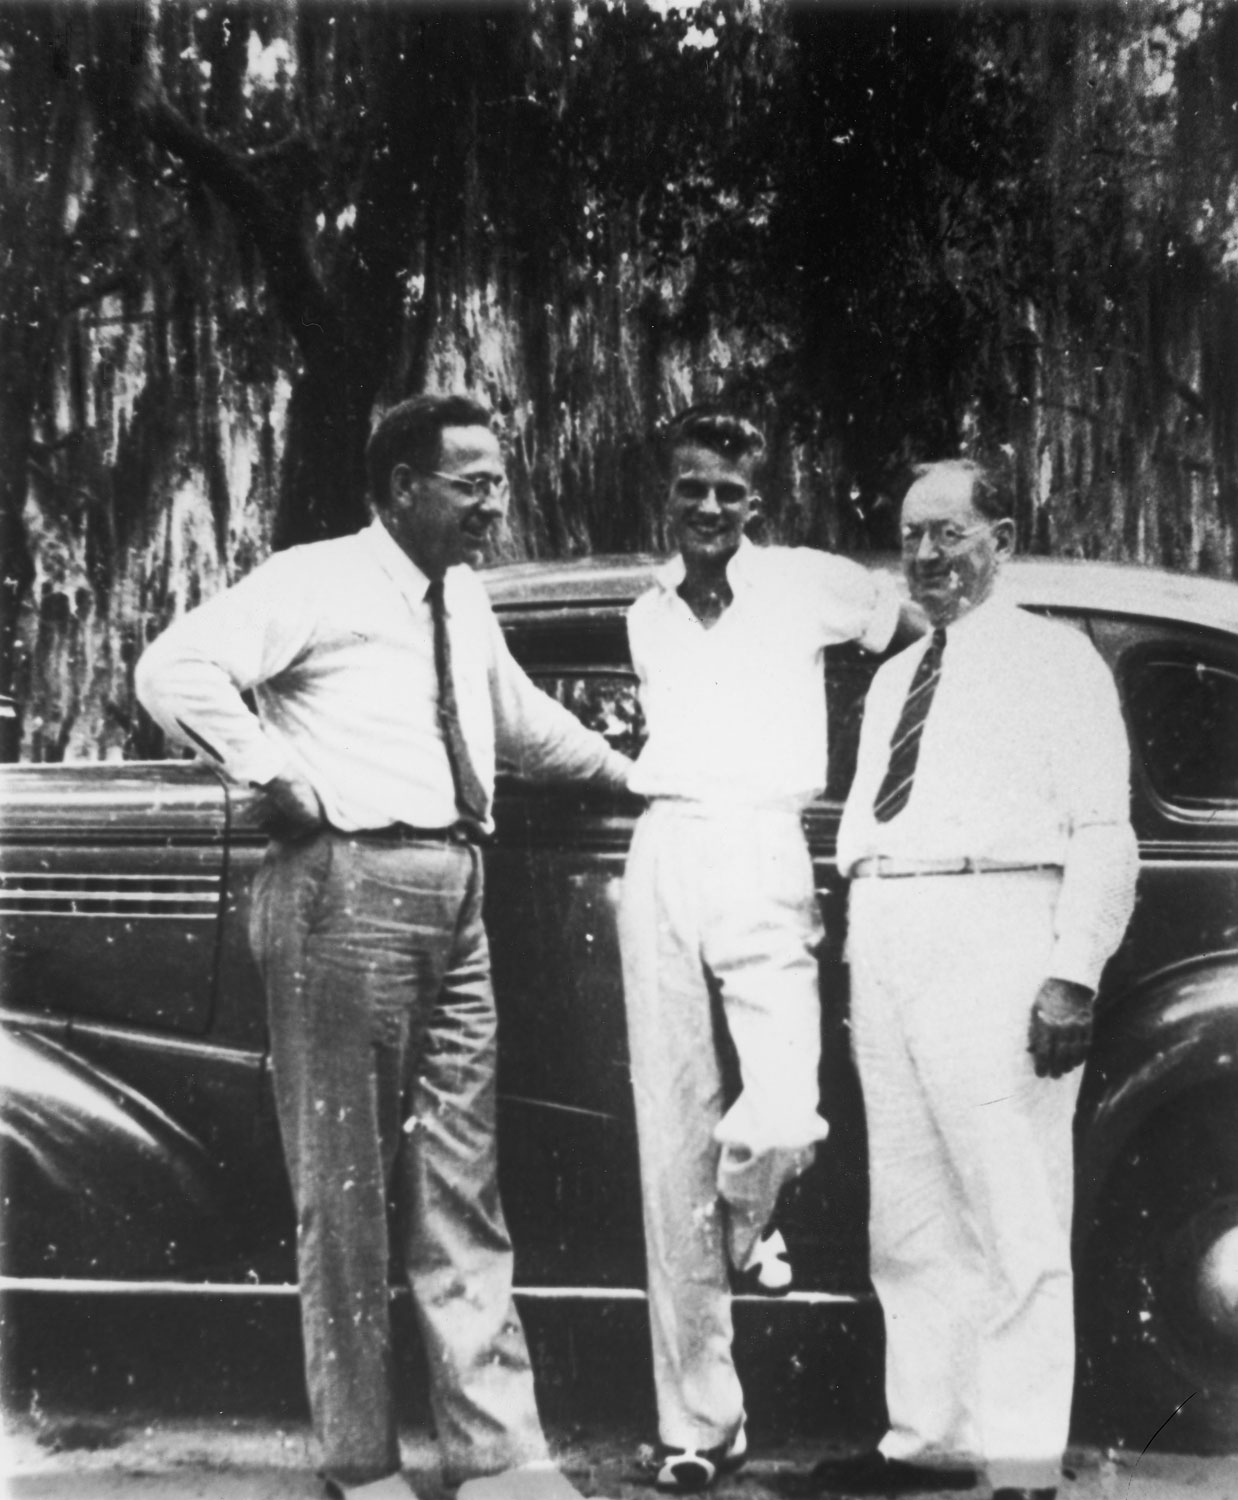 Student                                                              Graham (center) at the Florida Bible Institute in 1940. He eventually graduated from Wheaton College in Illinois in 1943.